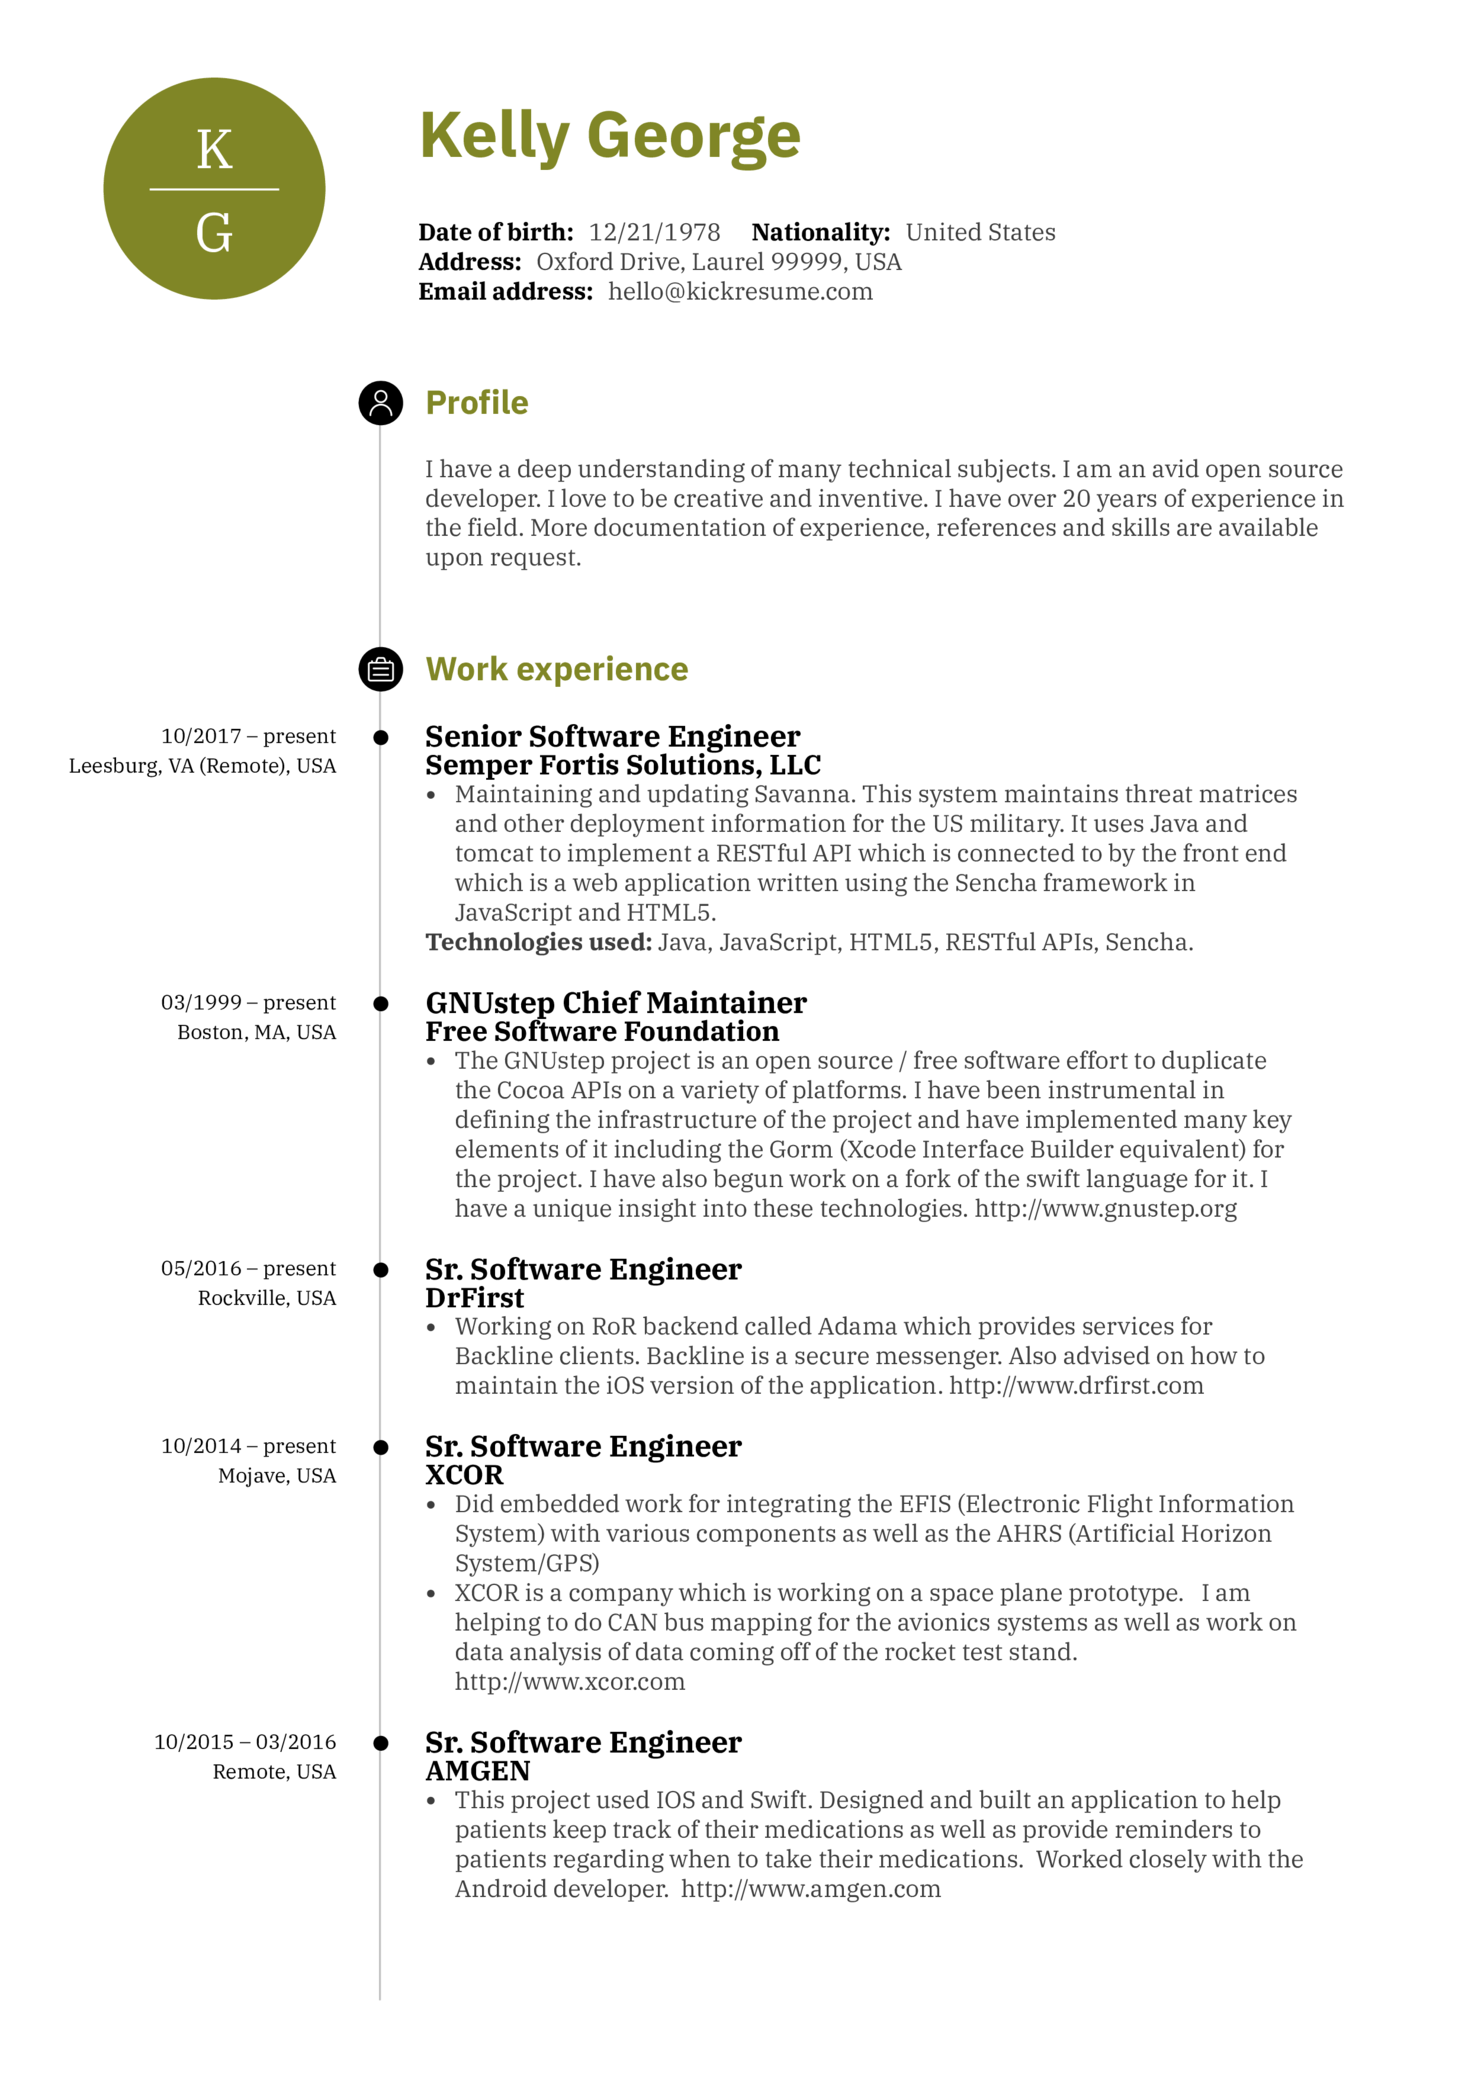 Senior software engineer resume sample | Resume samples | Career ...